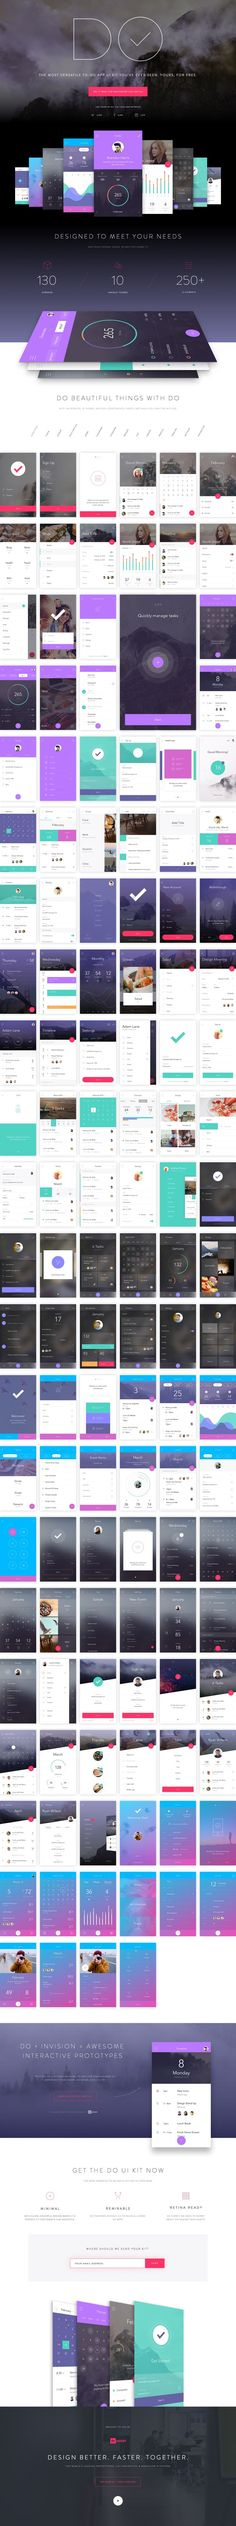 Loves Data Loves || Get DO UI Kit for Photoshop & Sketch by Anton Aheichanka | #UI #userinterface #app